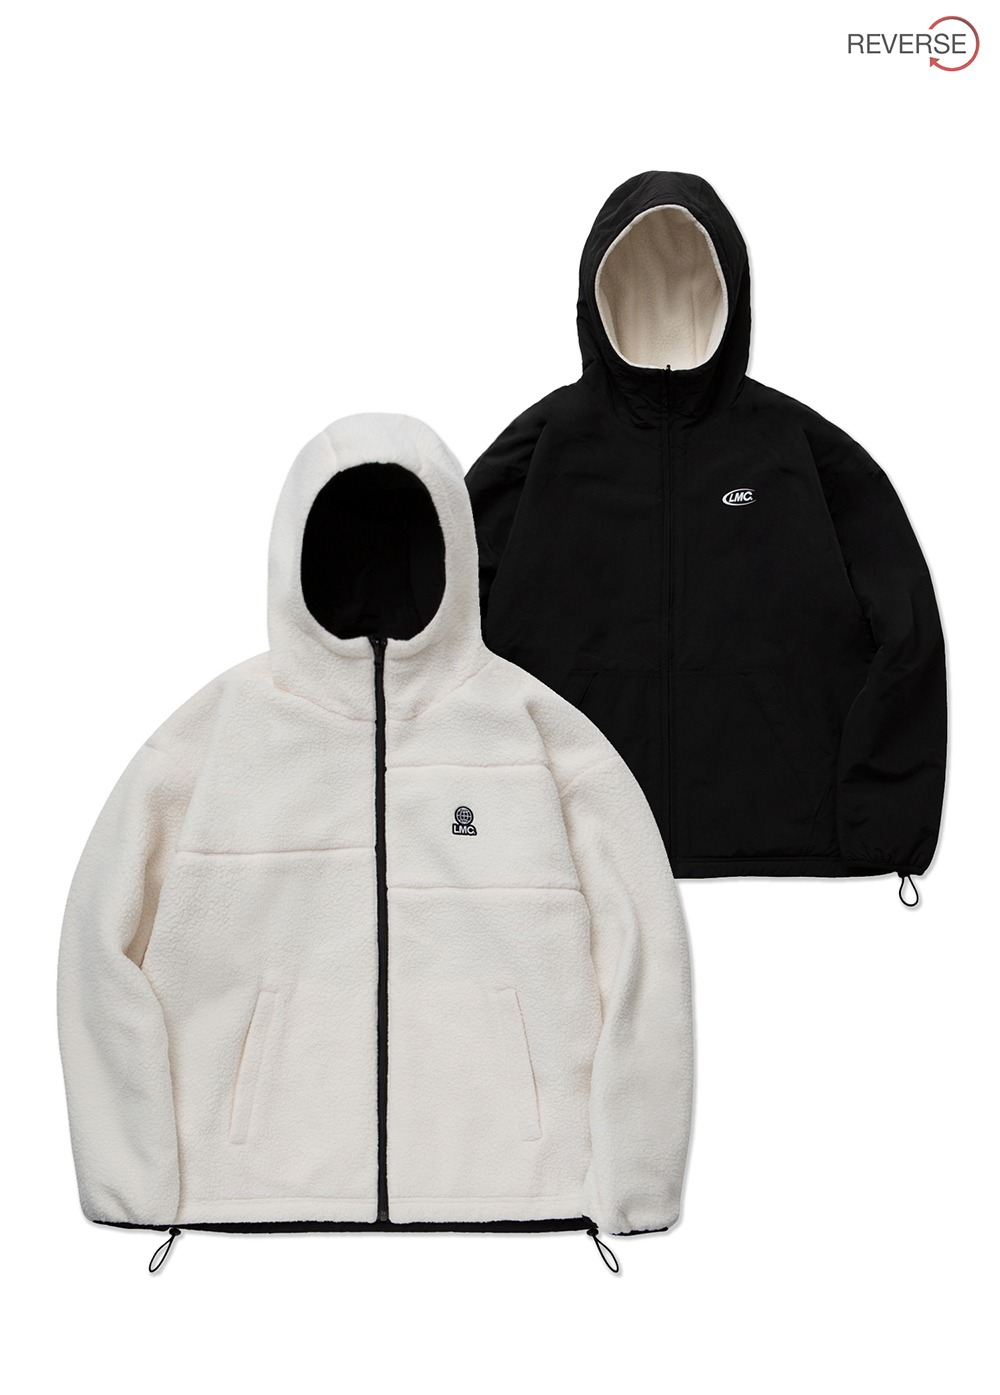 LMC BOA FLEECE REVERSIBLE HOODED JACKET cream/black